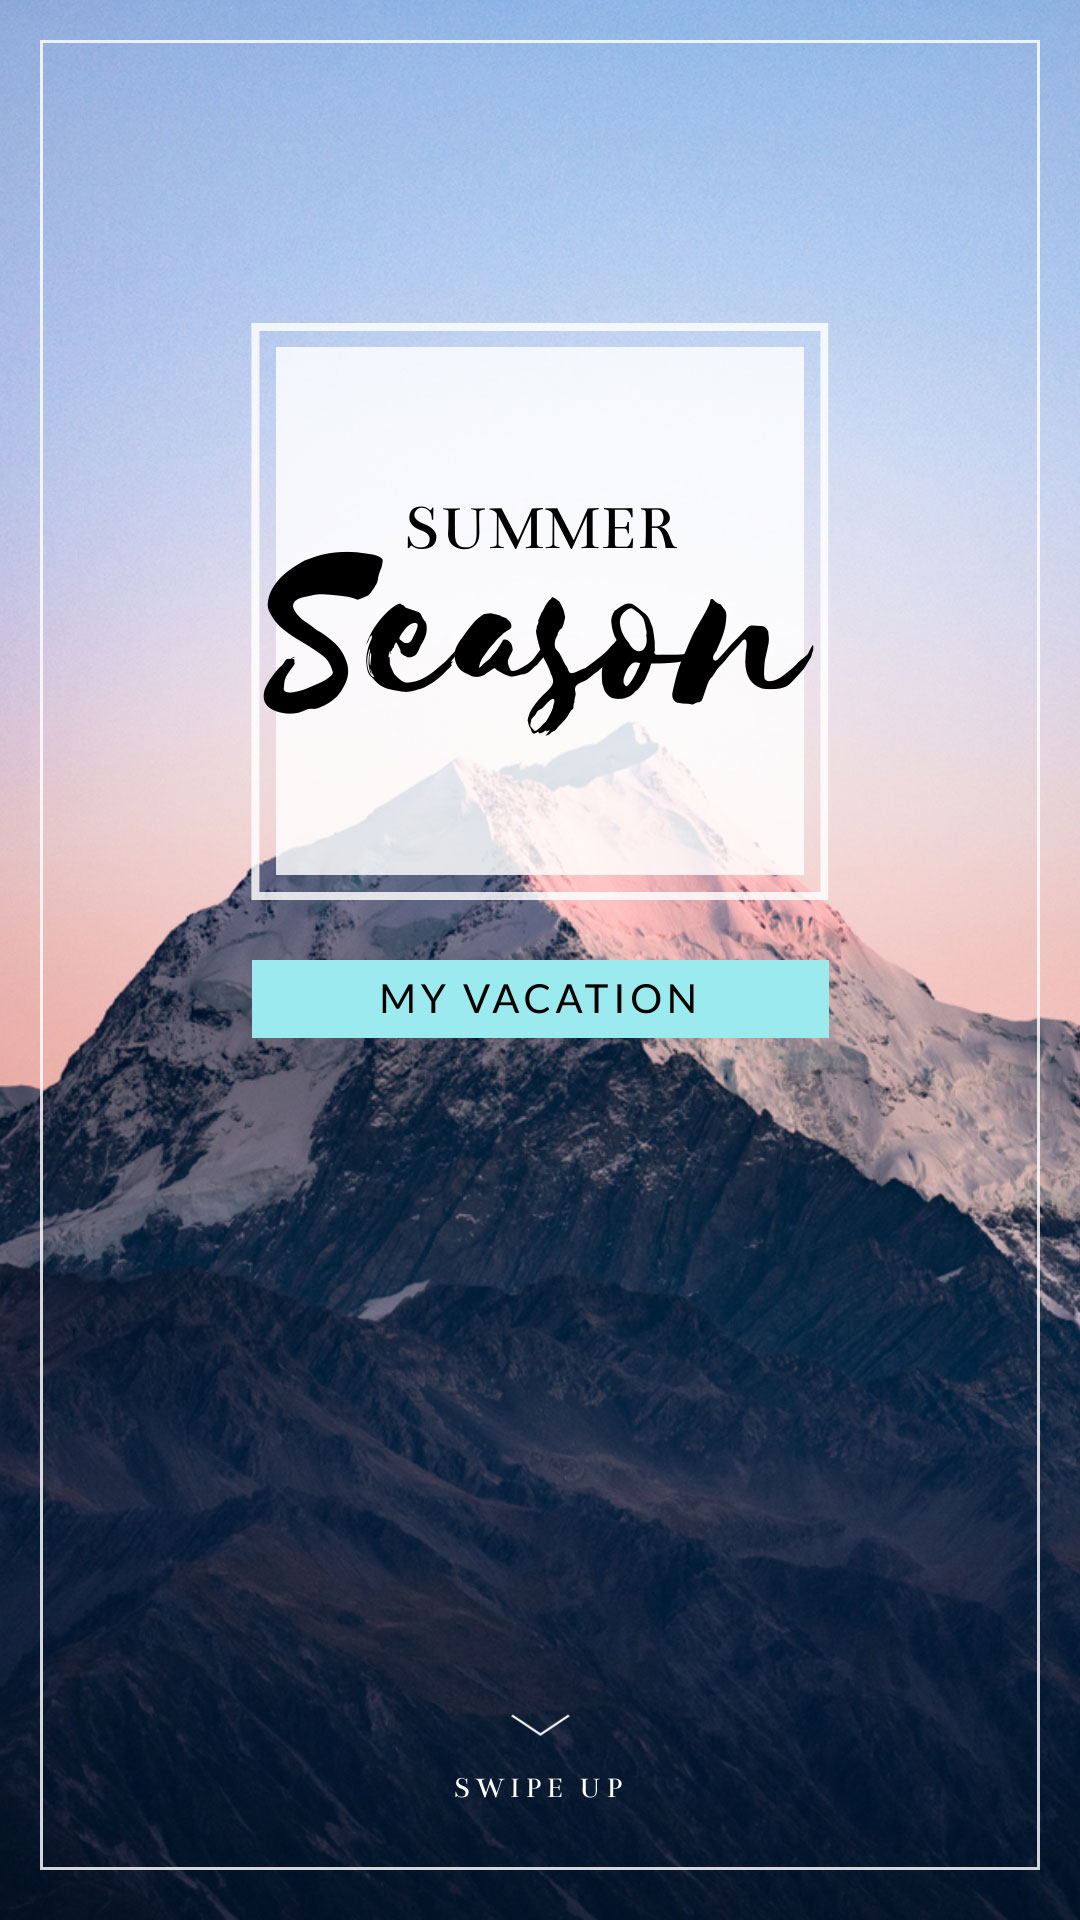 Vacation Instagram Stories Template